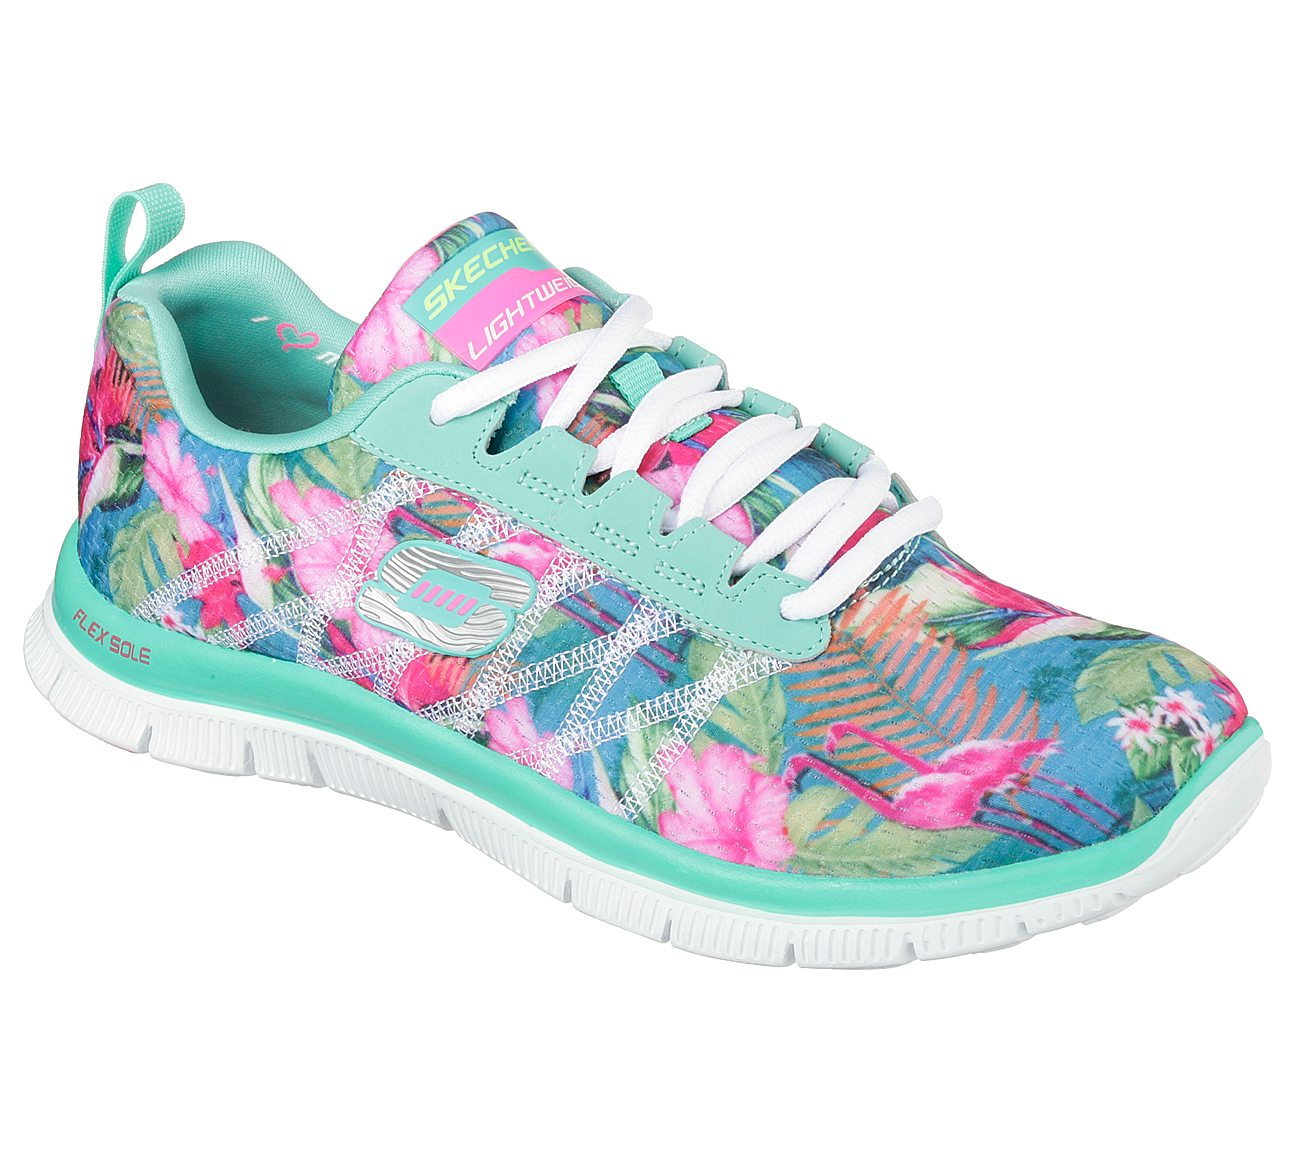 Buy Skechers BOBS Women's Bobs Plush-Dream Doodle Ballet Flat and other Shoes at muktadirsdiary.ml Our wide selection is eligible for free shipping and free returns.